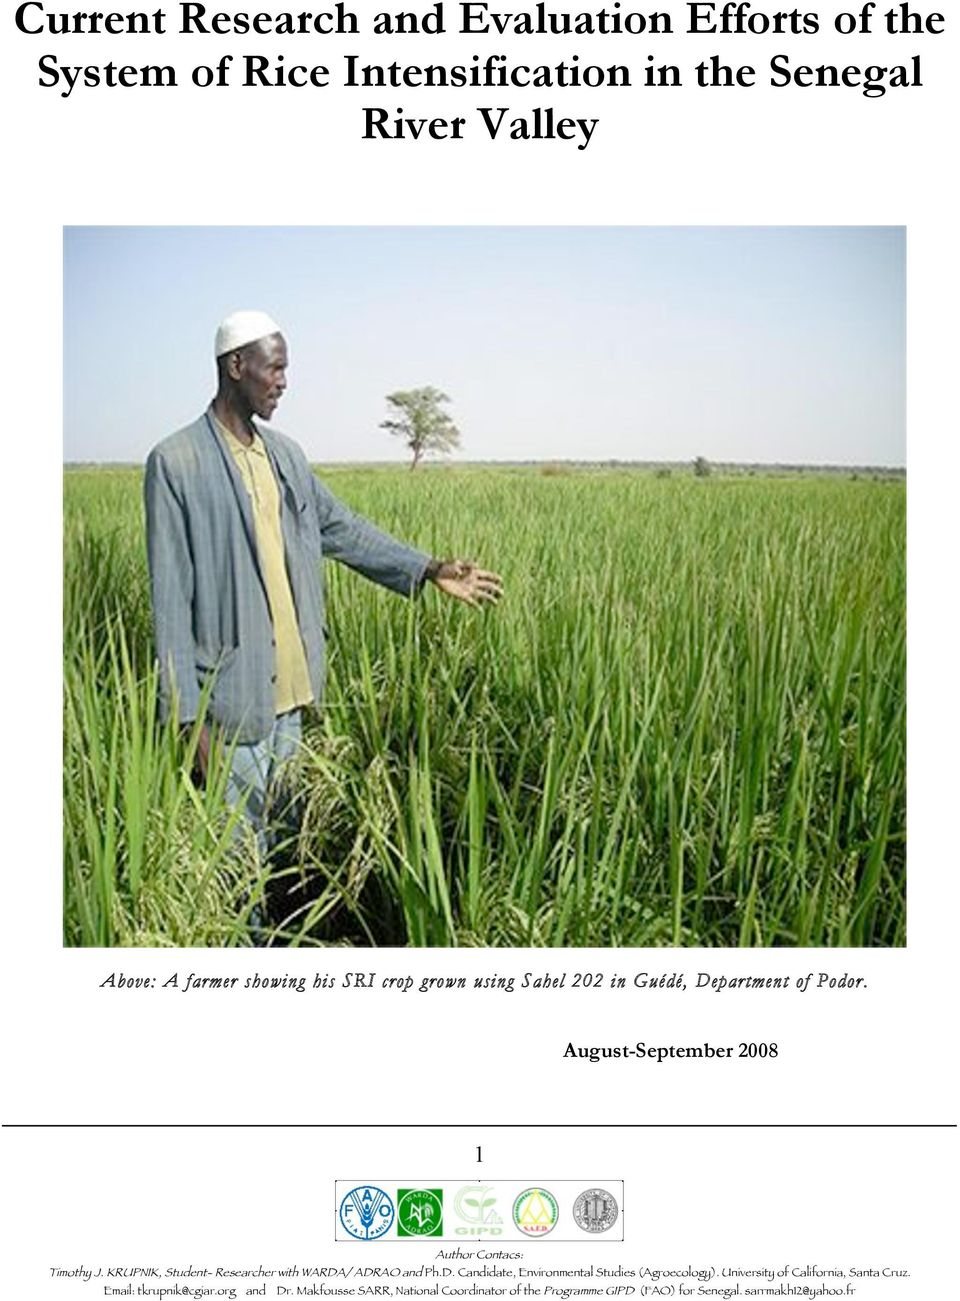 Above: A farmer showing his SRI crop grown using Sahel